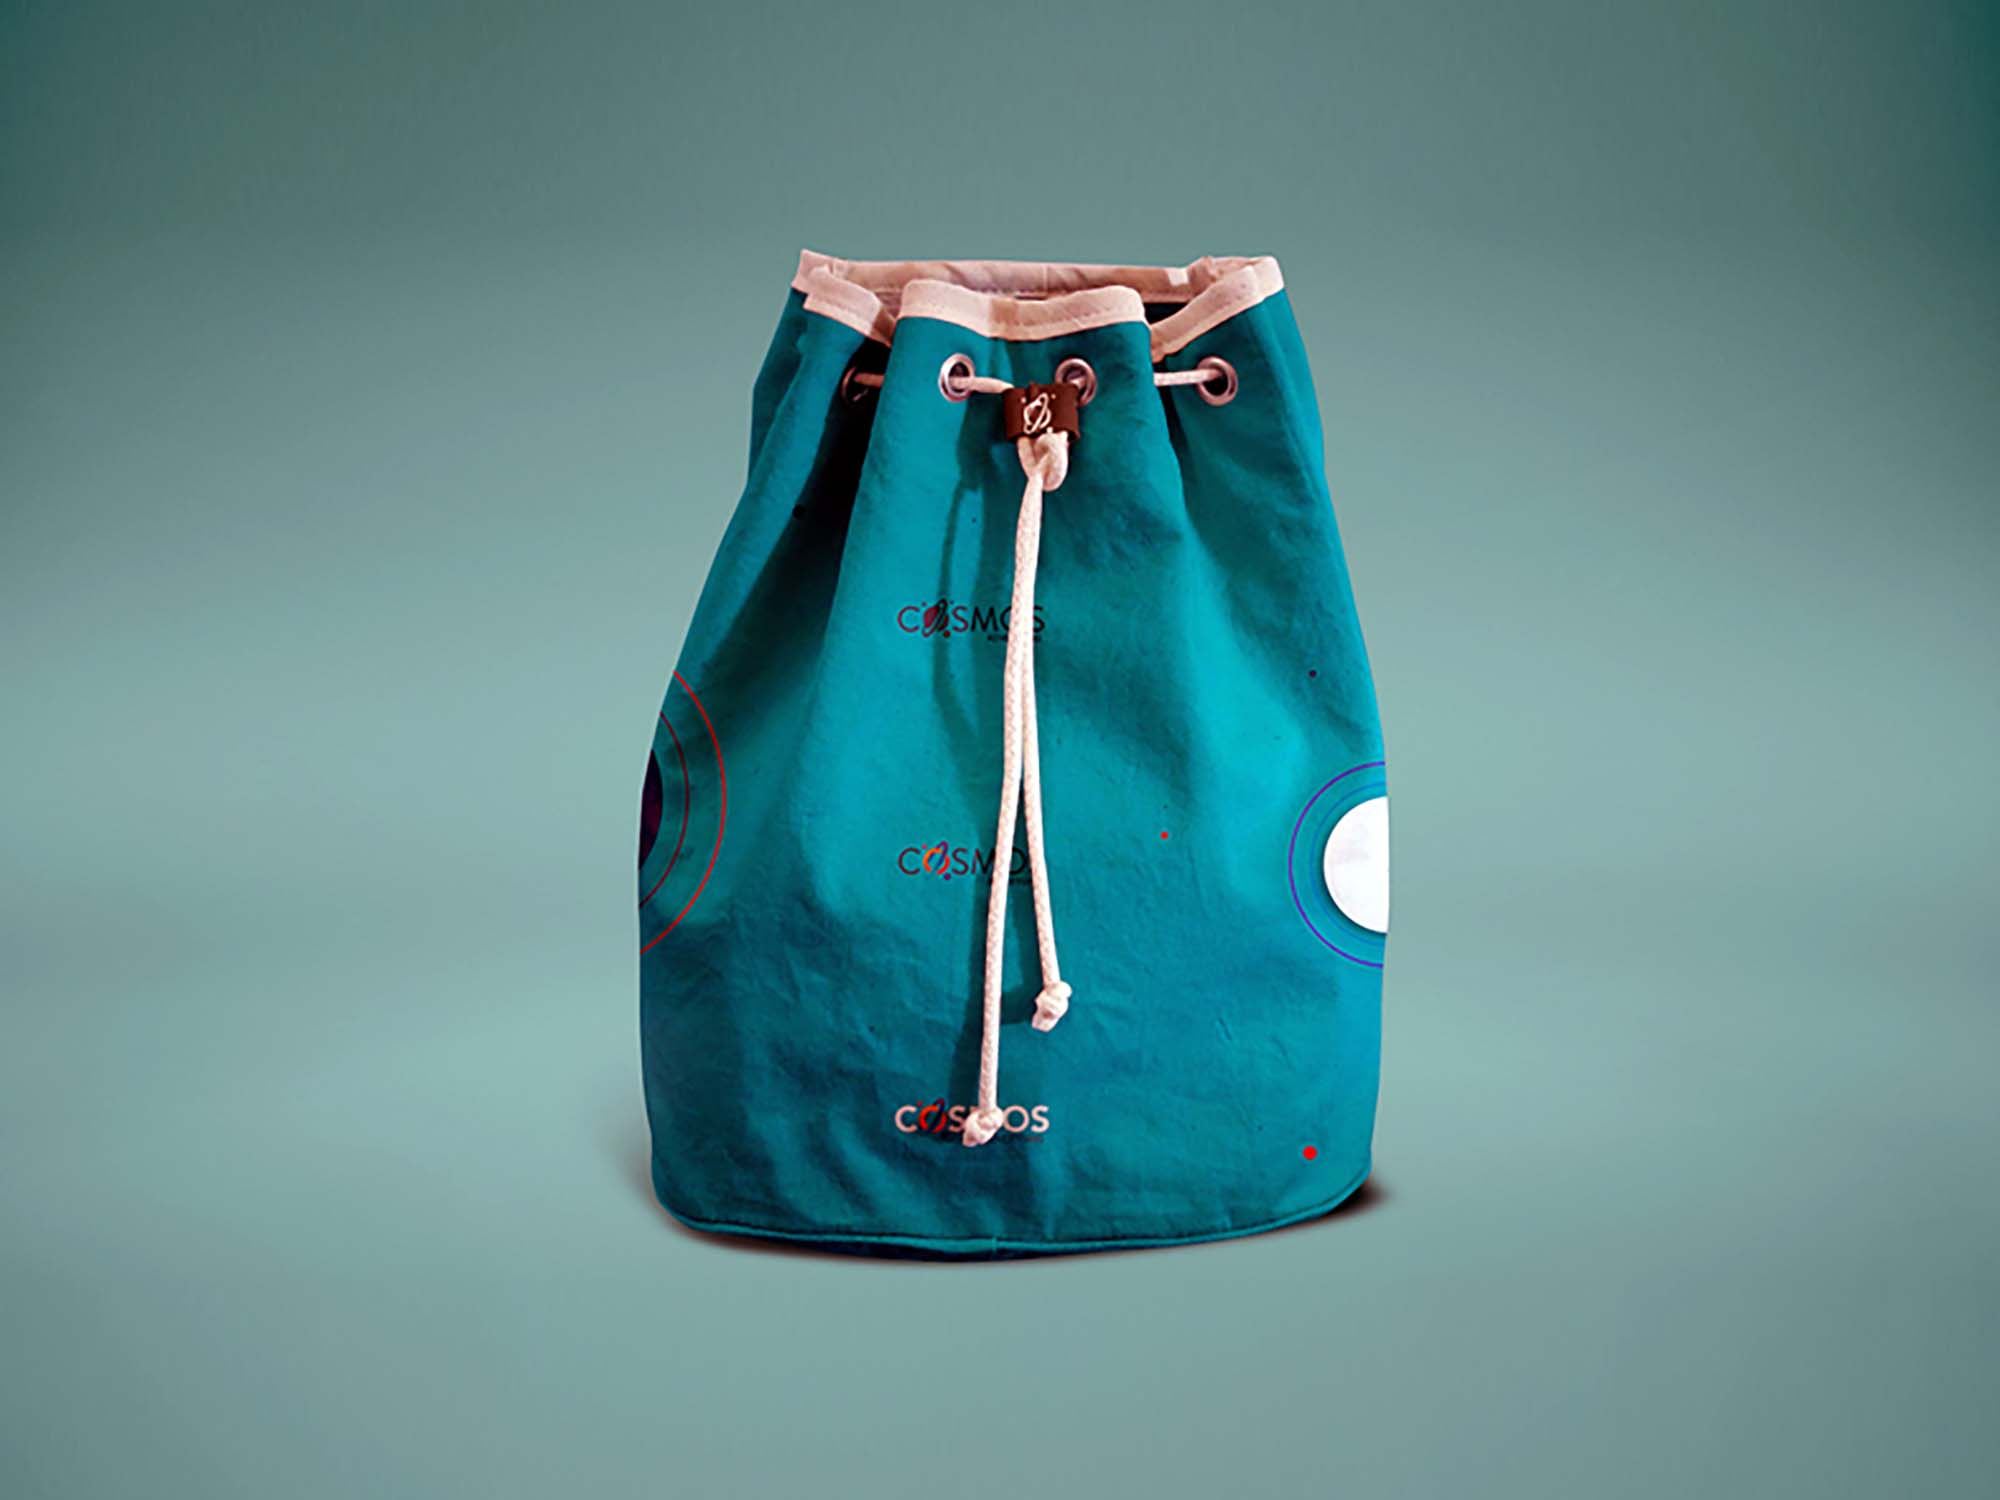 Cloth Bag Mockup 2